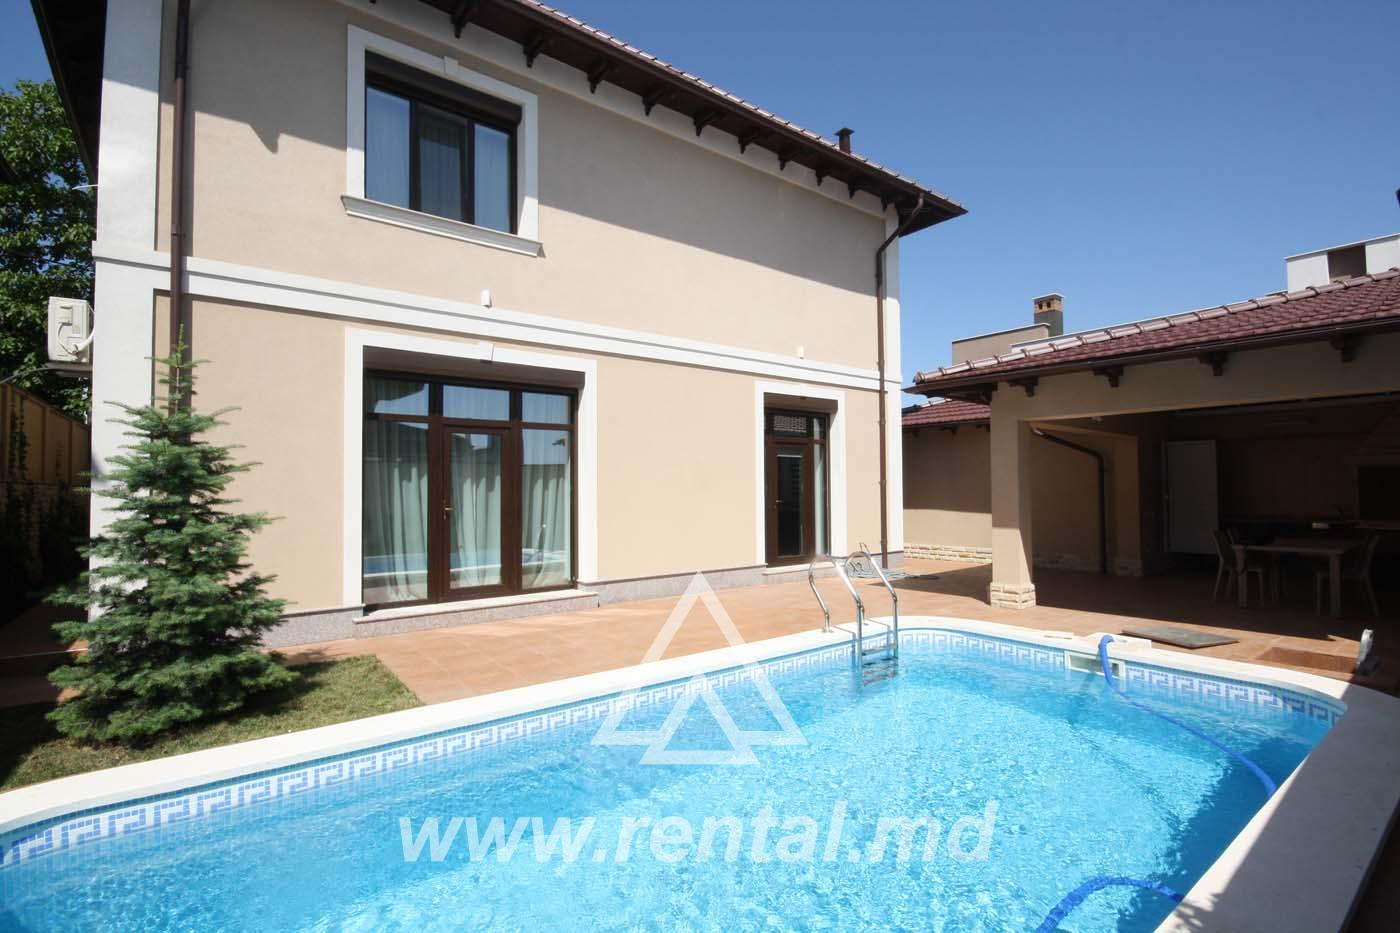 New house for rent in Telecenter with swimming pool